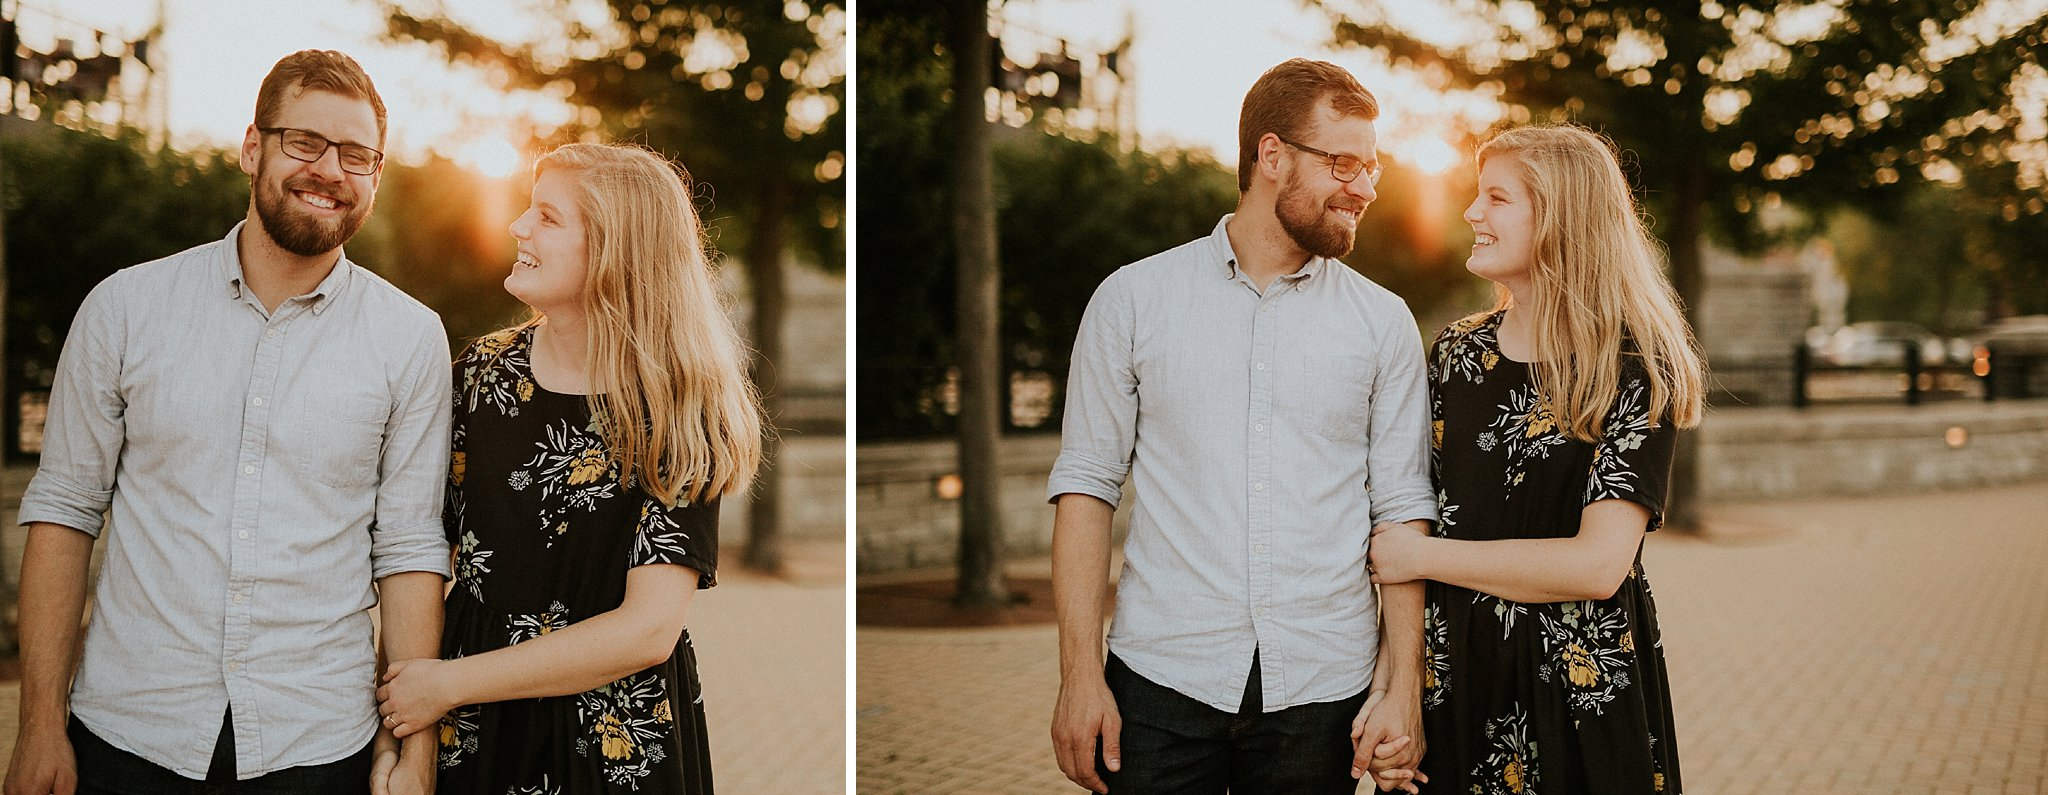 peter-katelyn_chicago-engagement-session_west-dundee-raceway-woods_0017.jpg